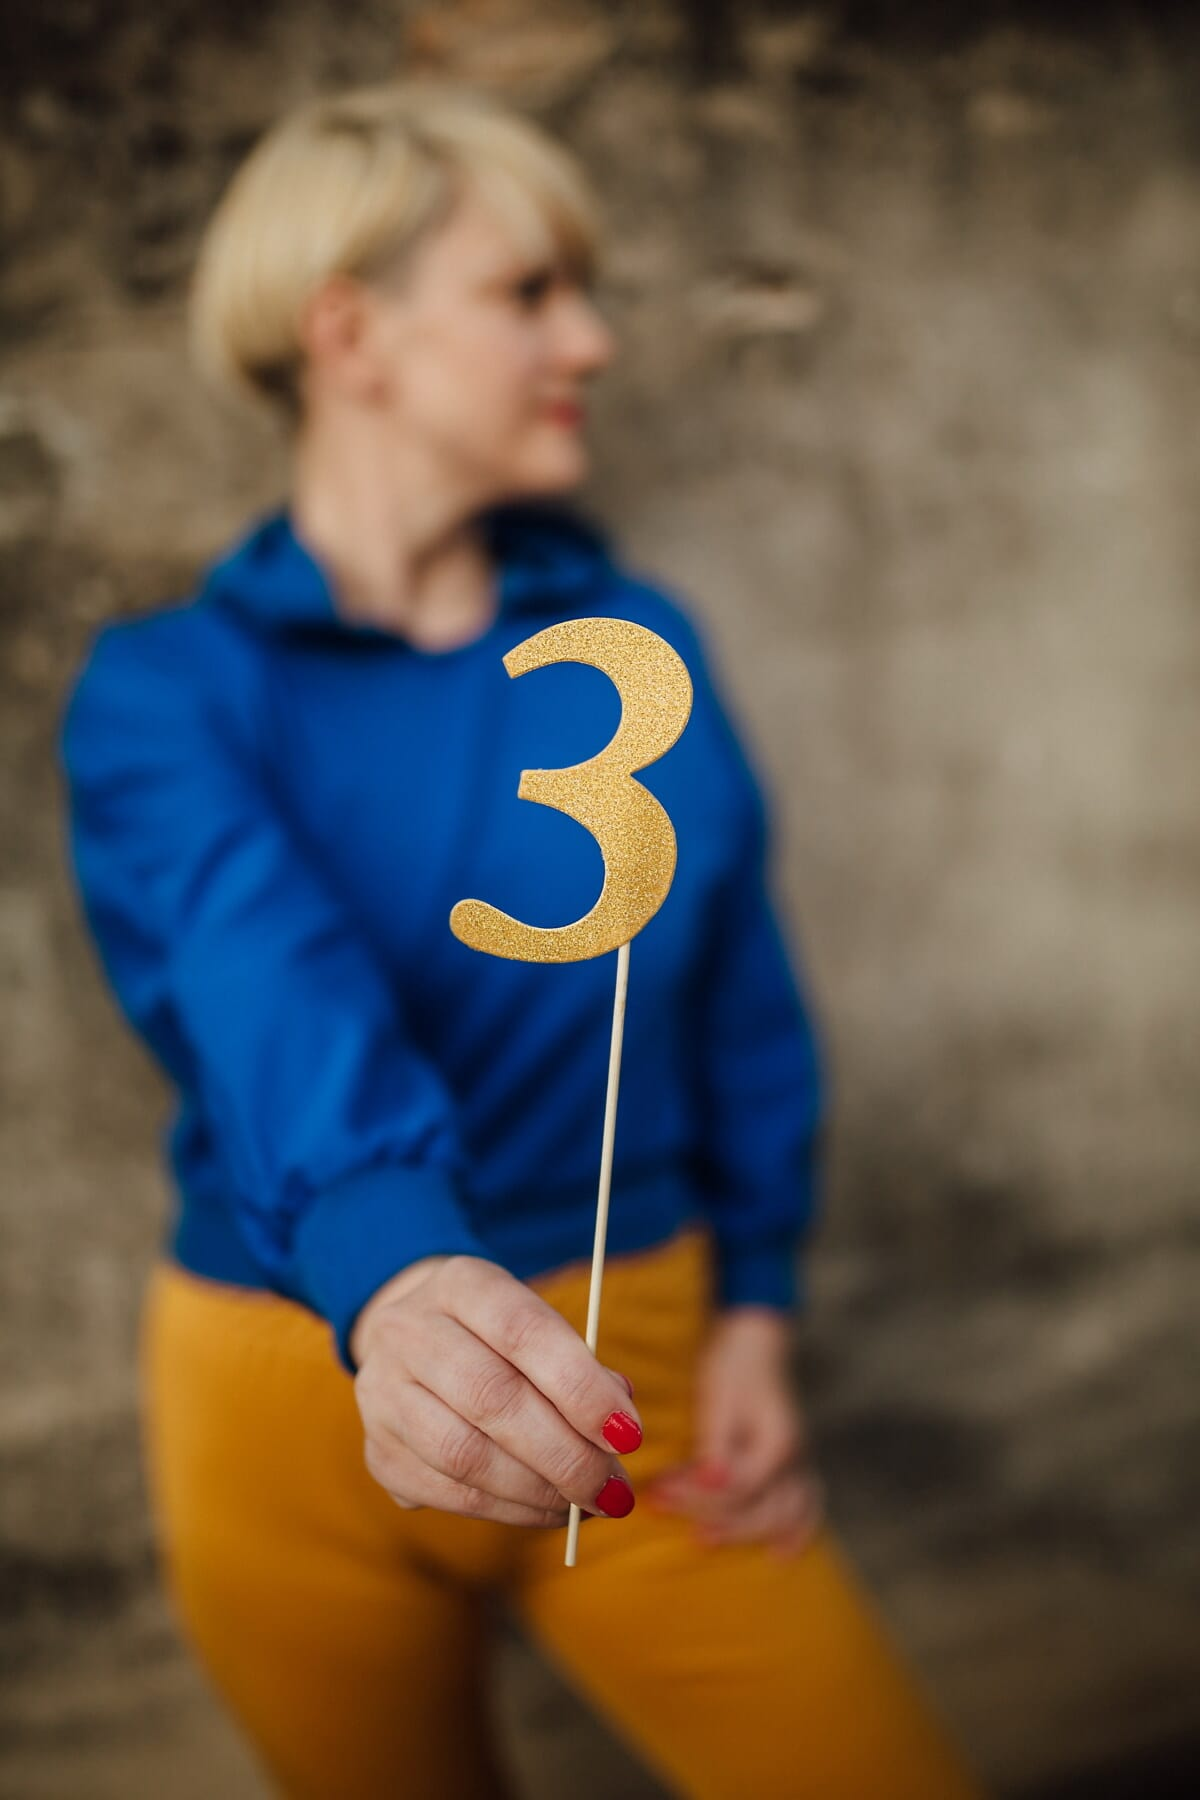 three, number, golden shine, holding, young woman, woman, outdoors, leisure, blur, fun